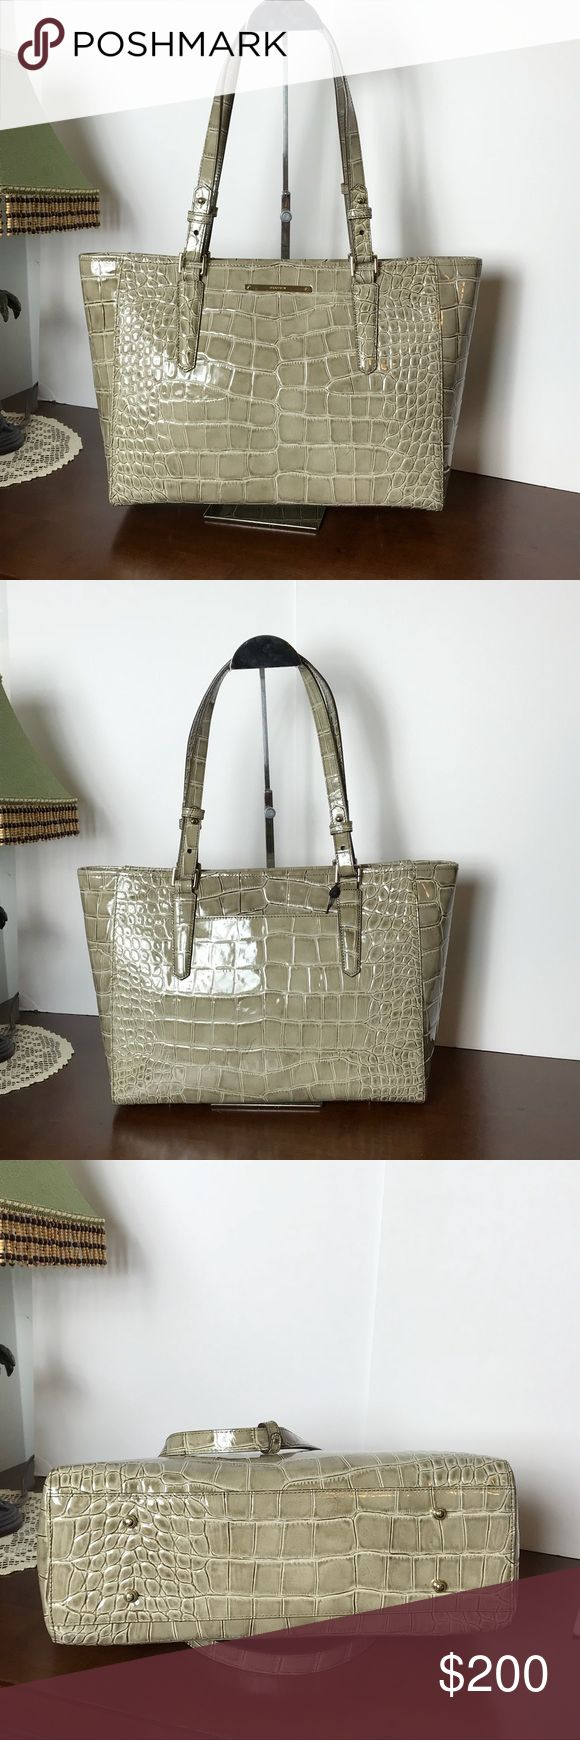 ⚜️⚜️BRAHMIN MEDIUM ARNO IN BEIGE PORTSMOUTH⚜️⚜️ Beautiful Brahmin medium Arno in the color Beige Portsmouth. It is a medium size bag that will hold all your essentials and then some. The color is a neutral color and will compliment any ensemble. It comes with tags and dust bag. Brahmin Bags Shoulder Bags